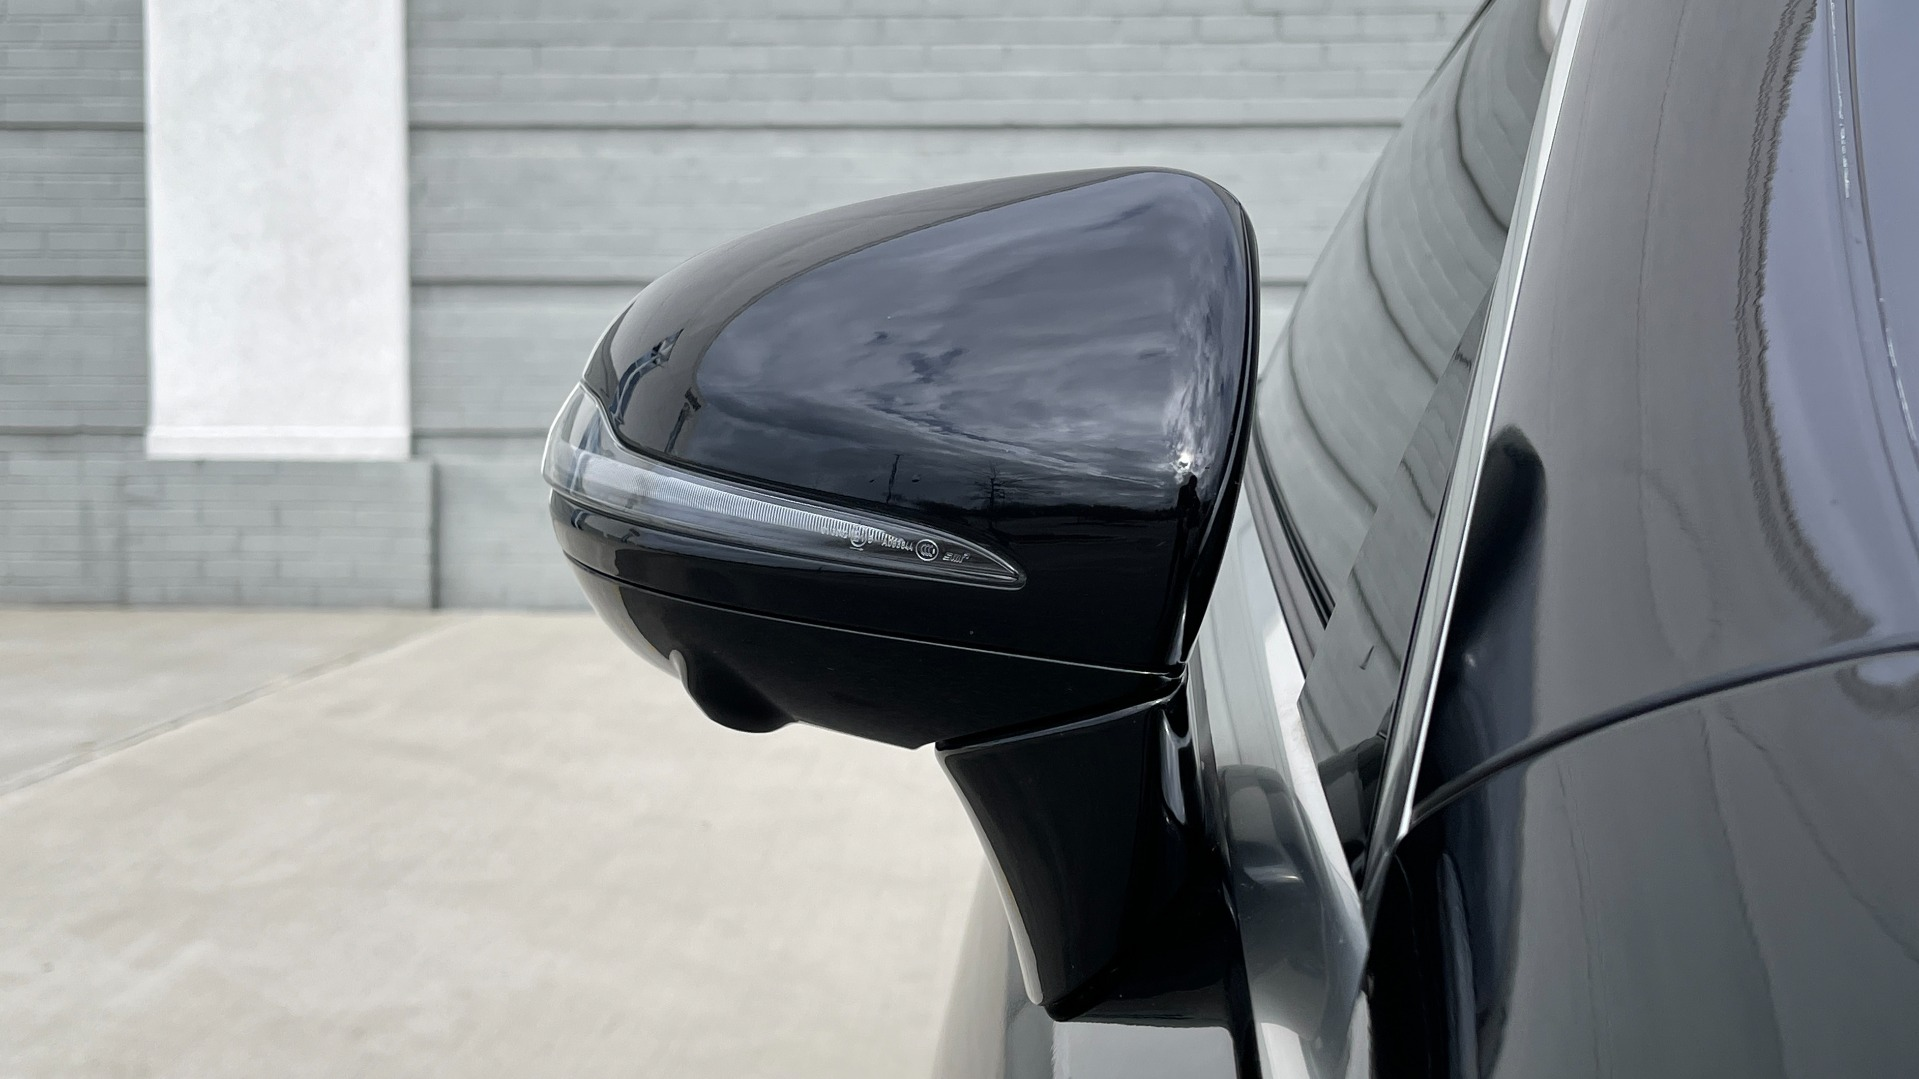 Used 2019 Mercedes-Benz E-CLASS E 450 PREMIUM / AMG LINE / PARK ASST / BSA / BURMESTER for sale $49,995 at Formula Imports in Charlotte NC 28227 11